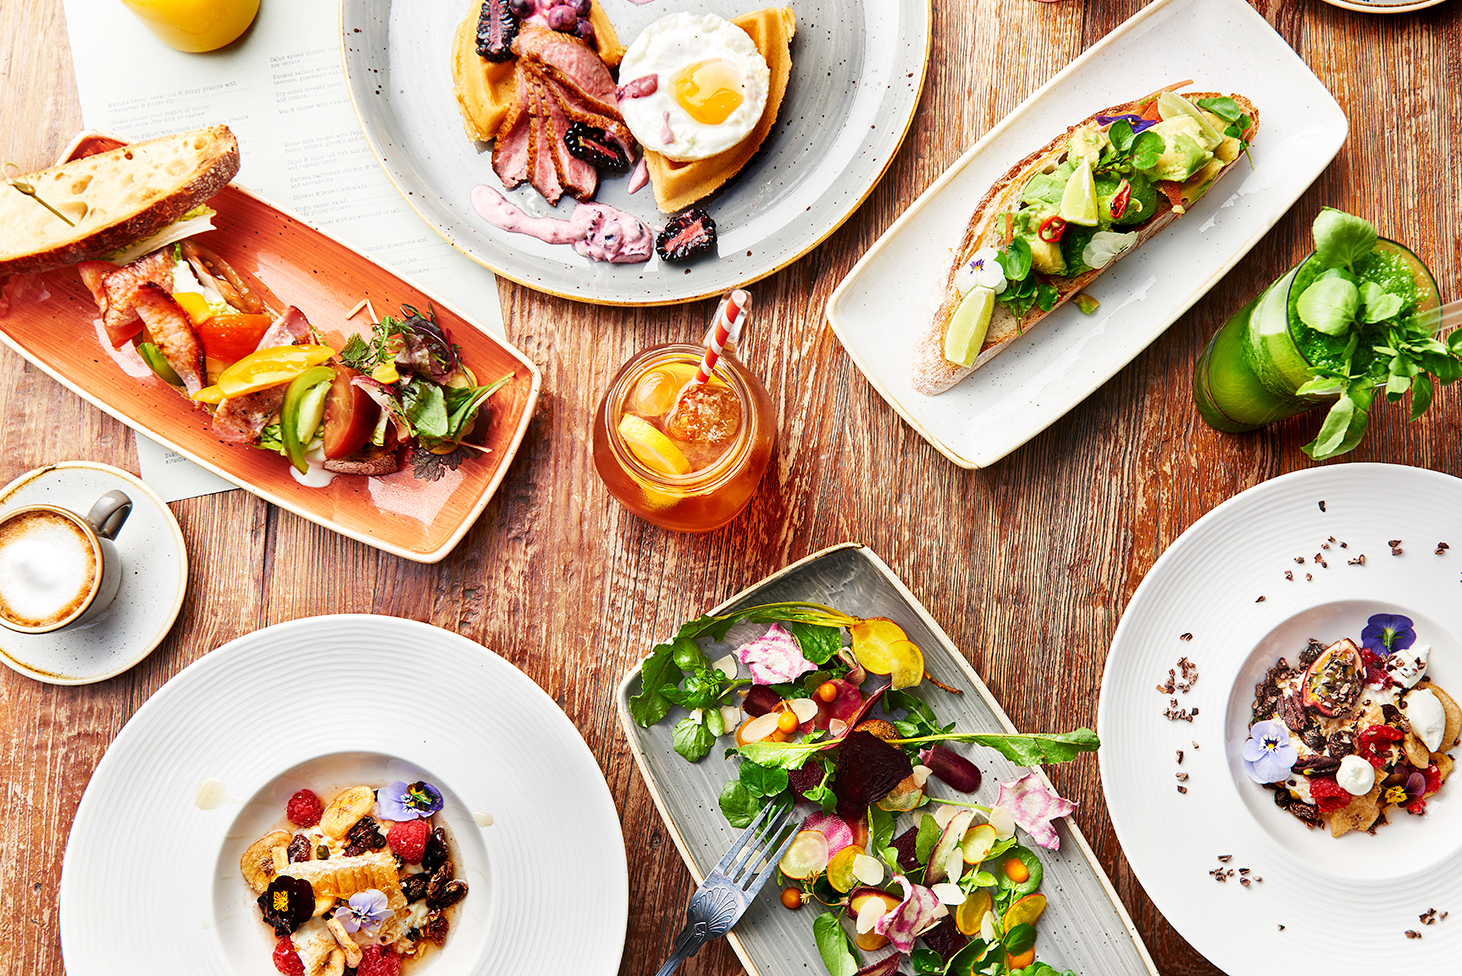 food photographer photography london uk drinks meals lunch dinner brunch breakfast advertising editorial waffles fried eggs blackberries blueberries blueberry blackberry sandwich granola juice tea coffee drinks spread table friends sharing aviator by tag one eleven farnborough